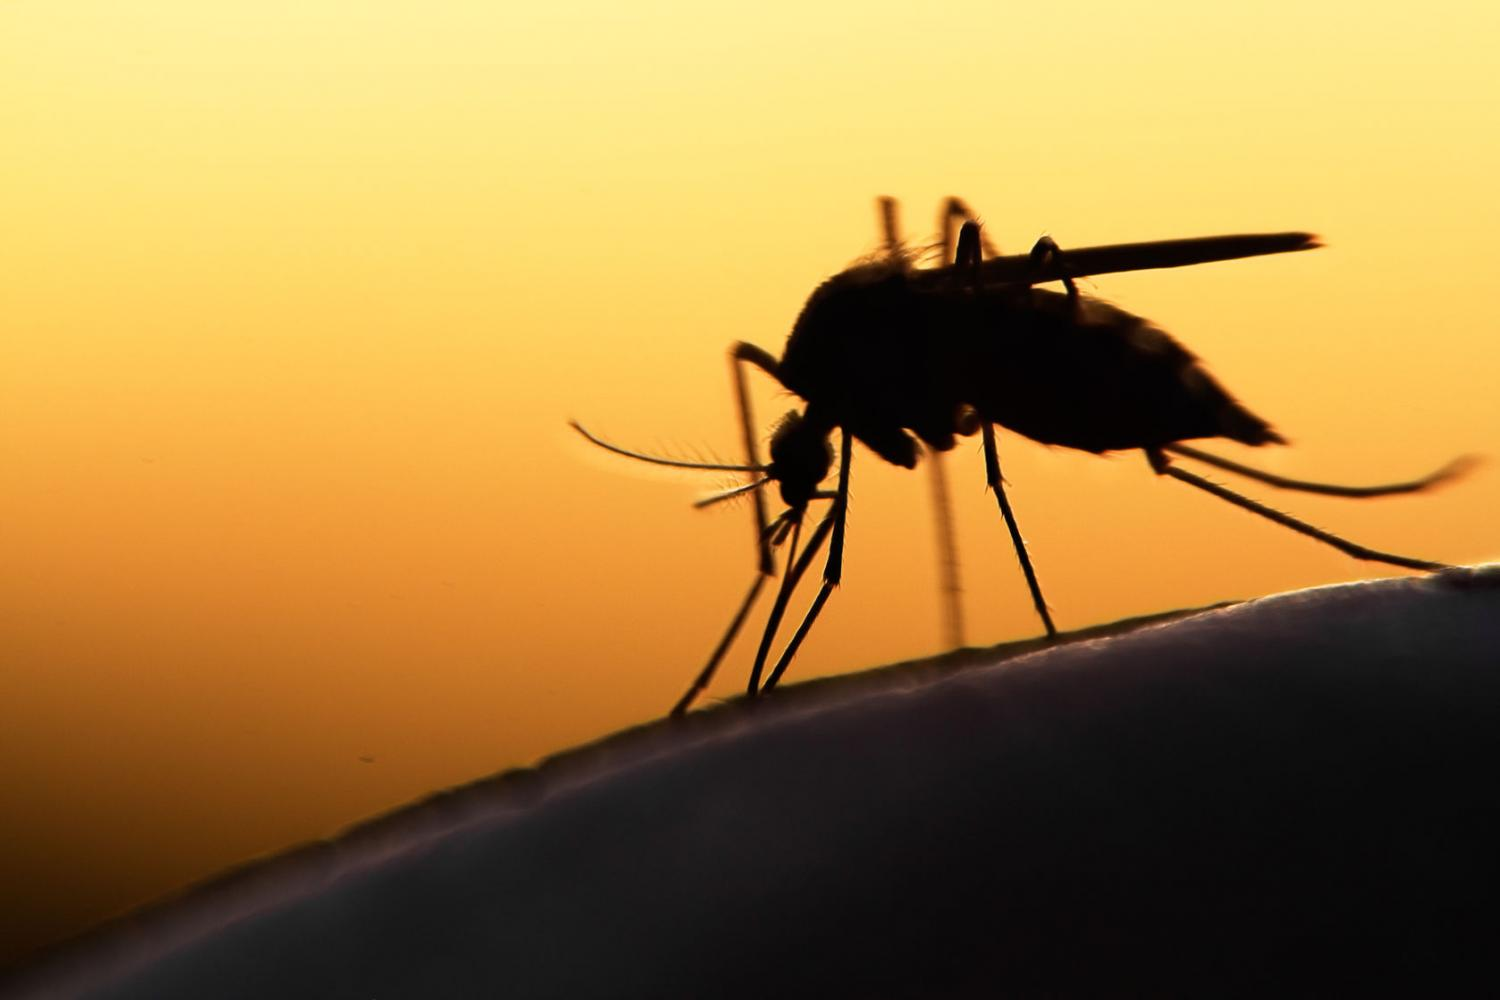 World's first malaria vaccine Mosquirix to be tested in Africa